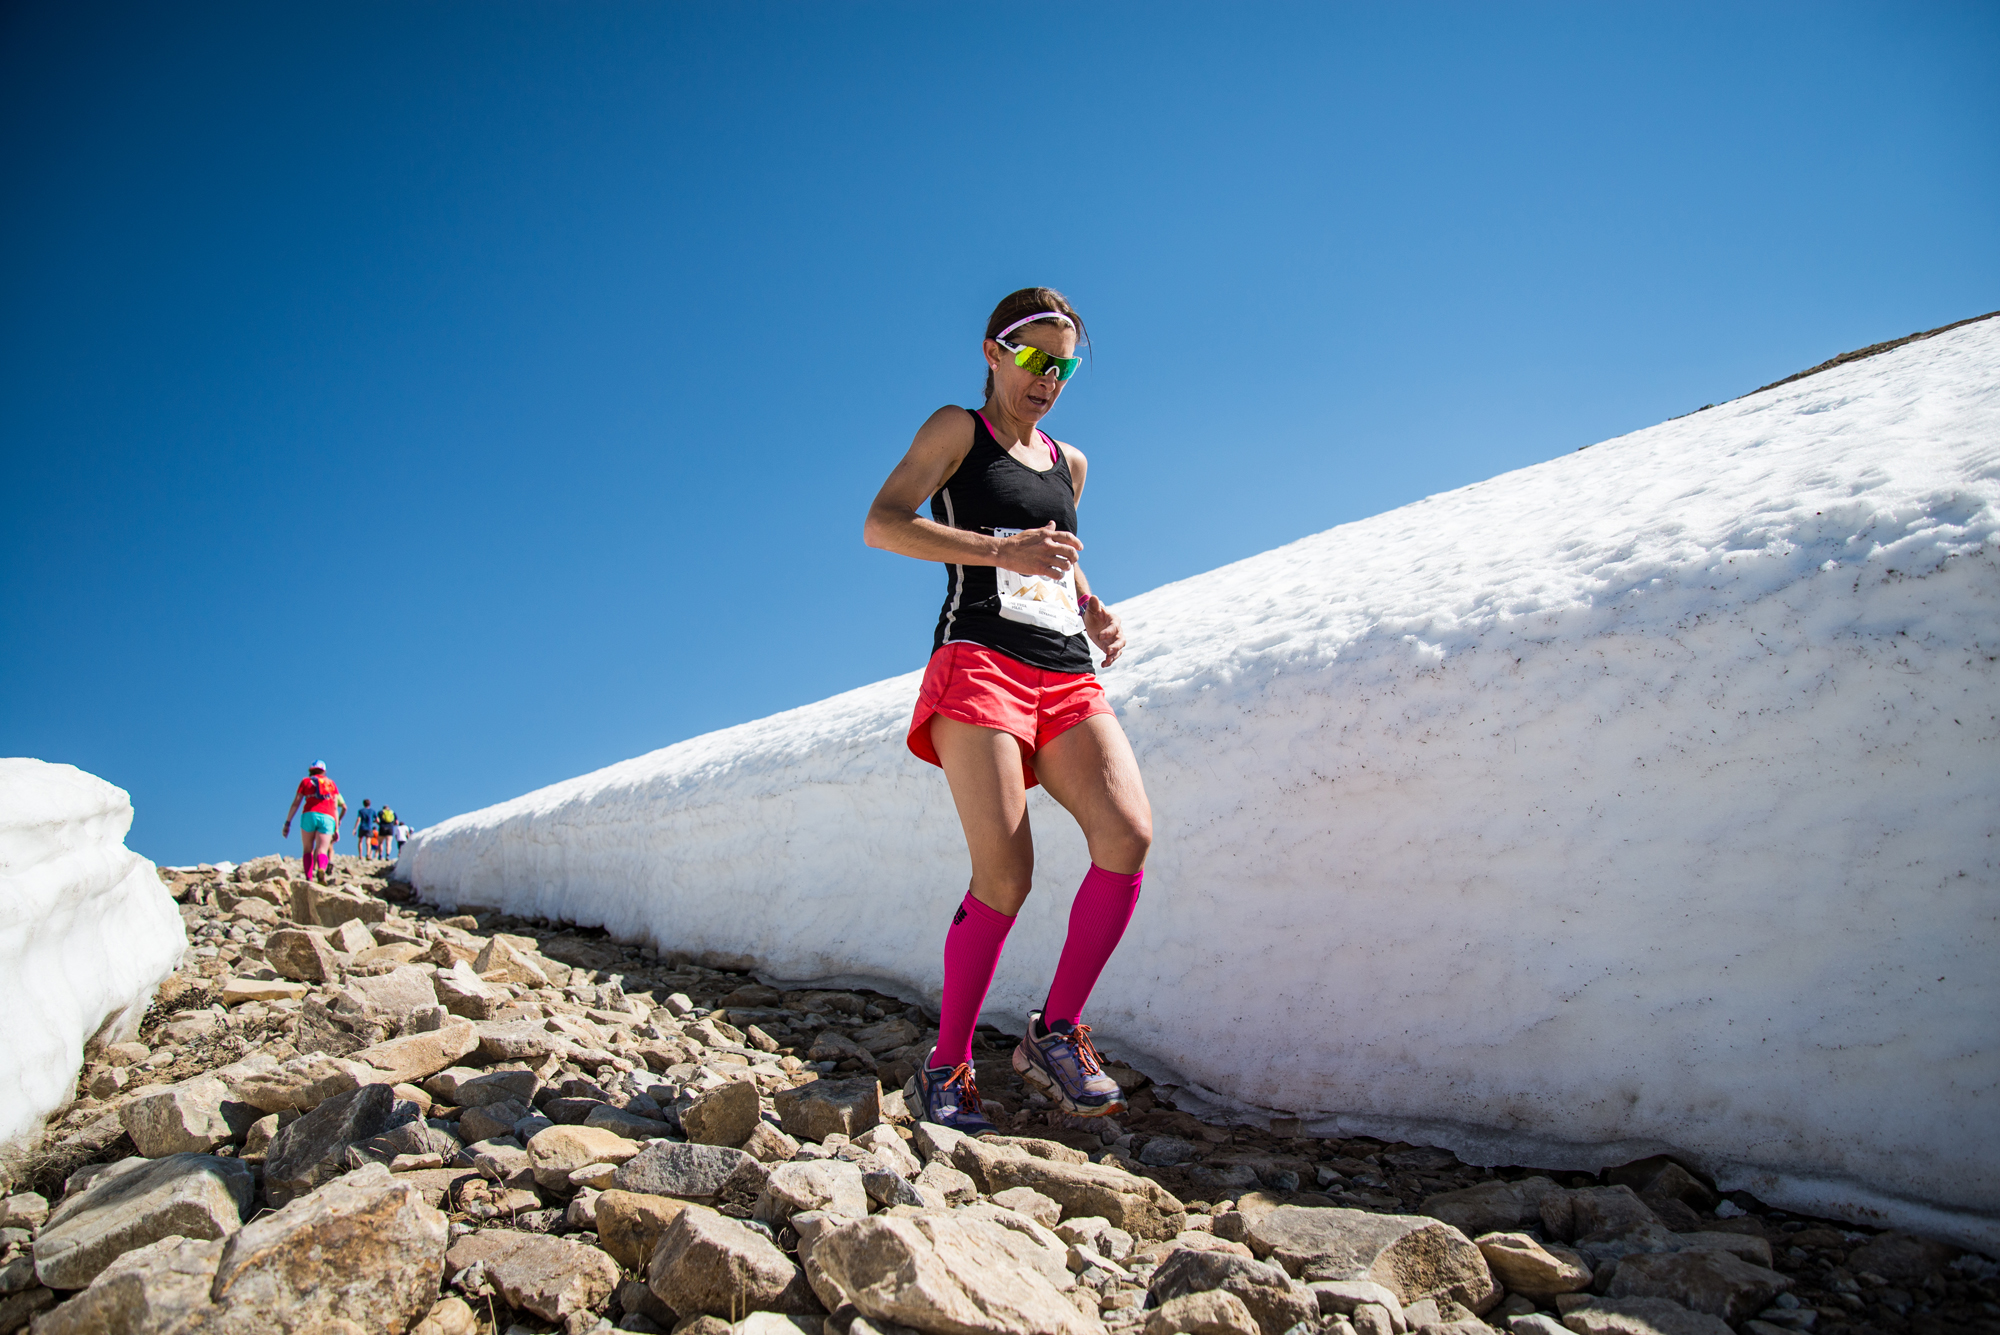 Leadville Race Series Kicks Off In Colorado With The